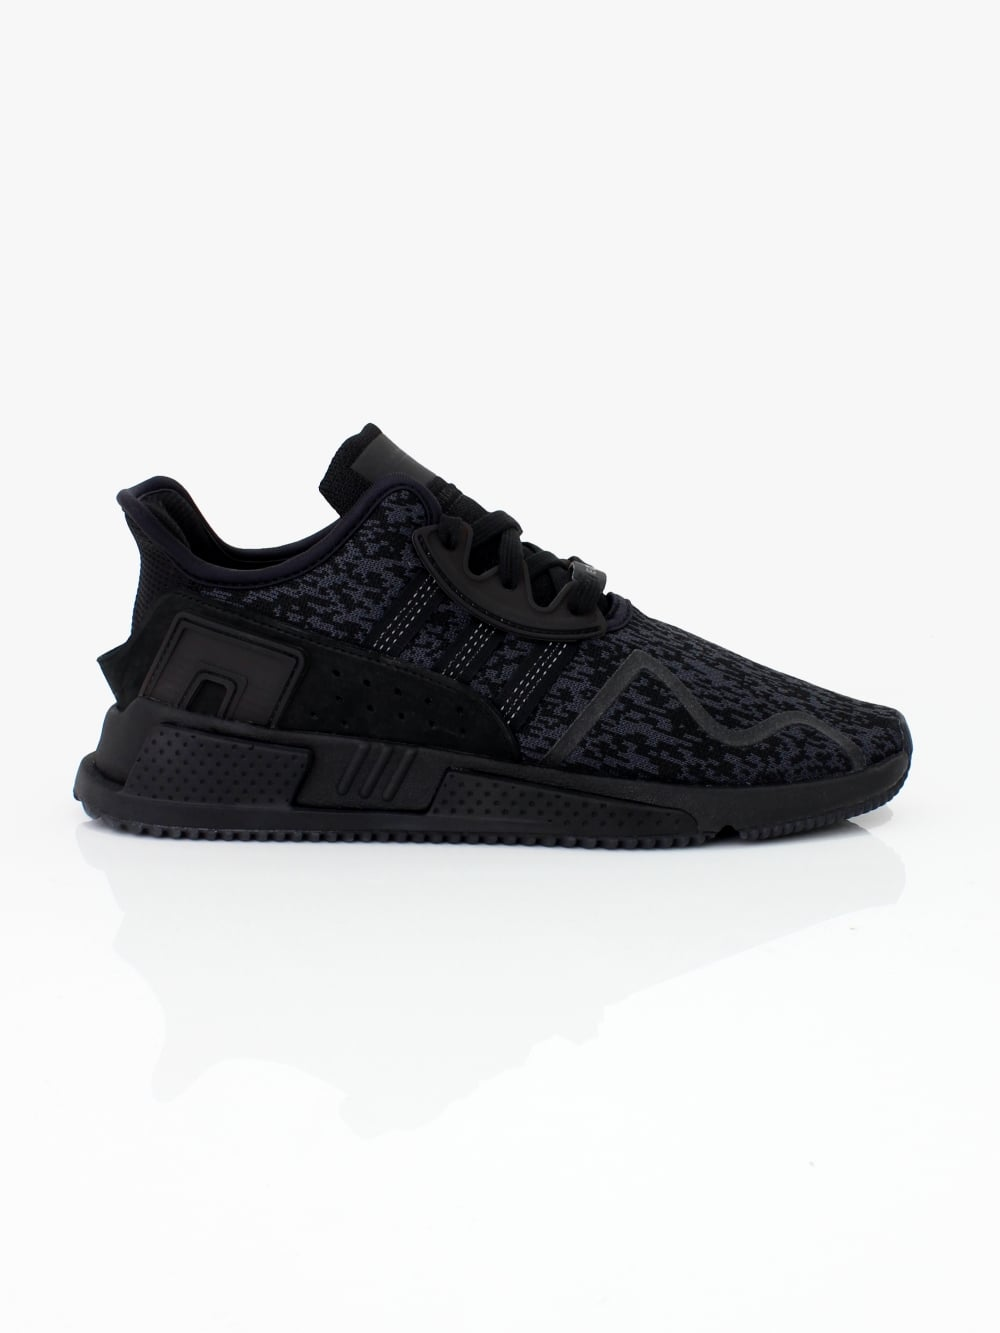 adidas EQT Cushion ADV in Black Black - Northern Threads 067f000d7